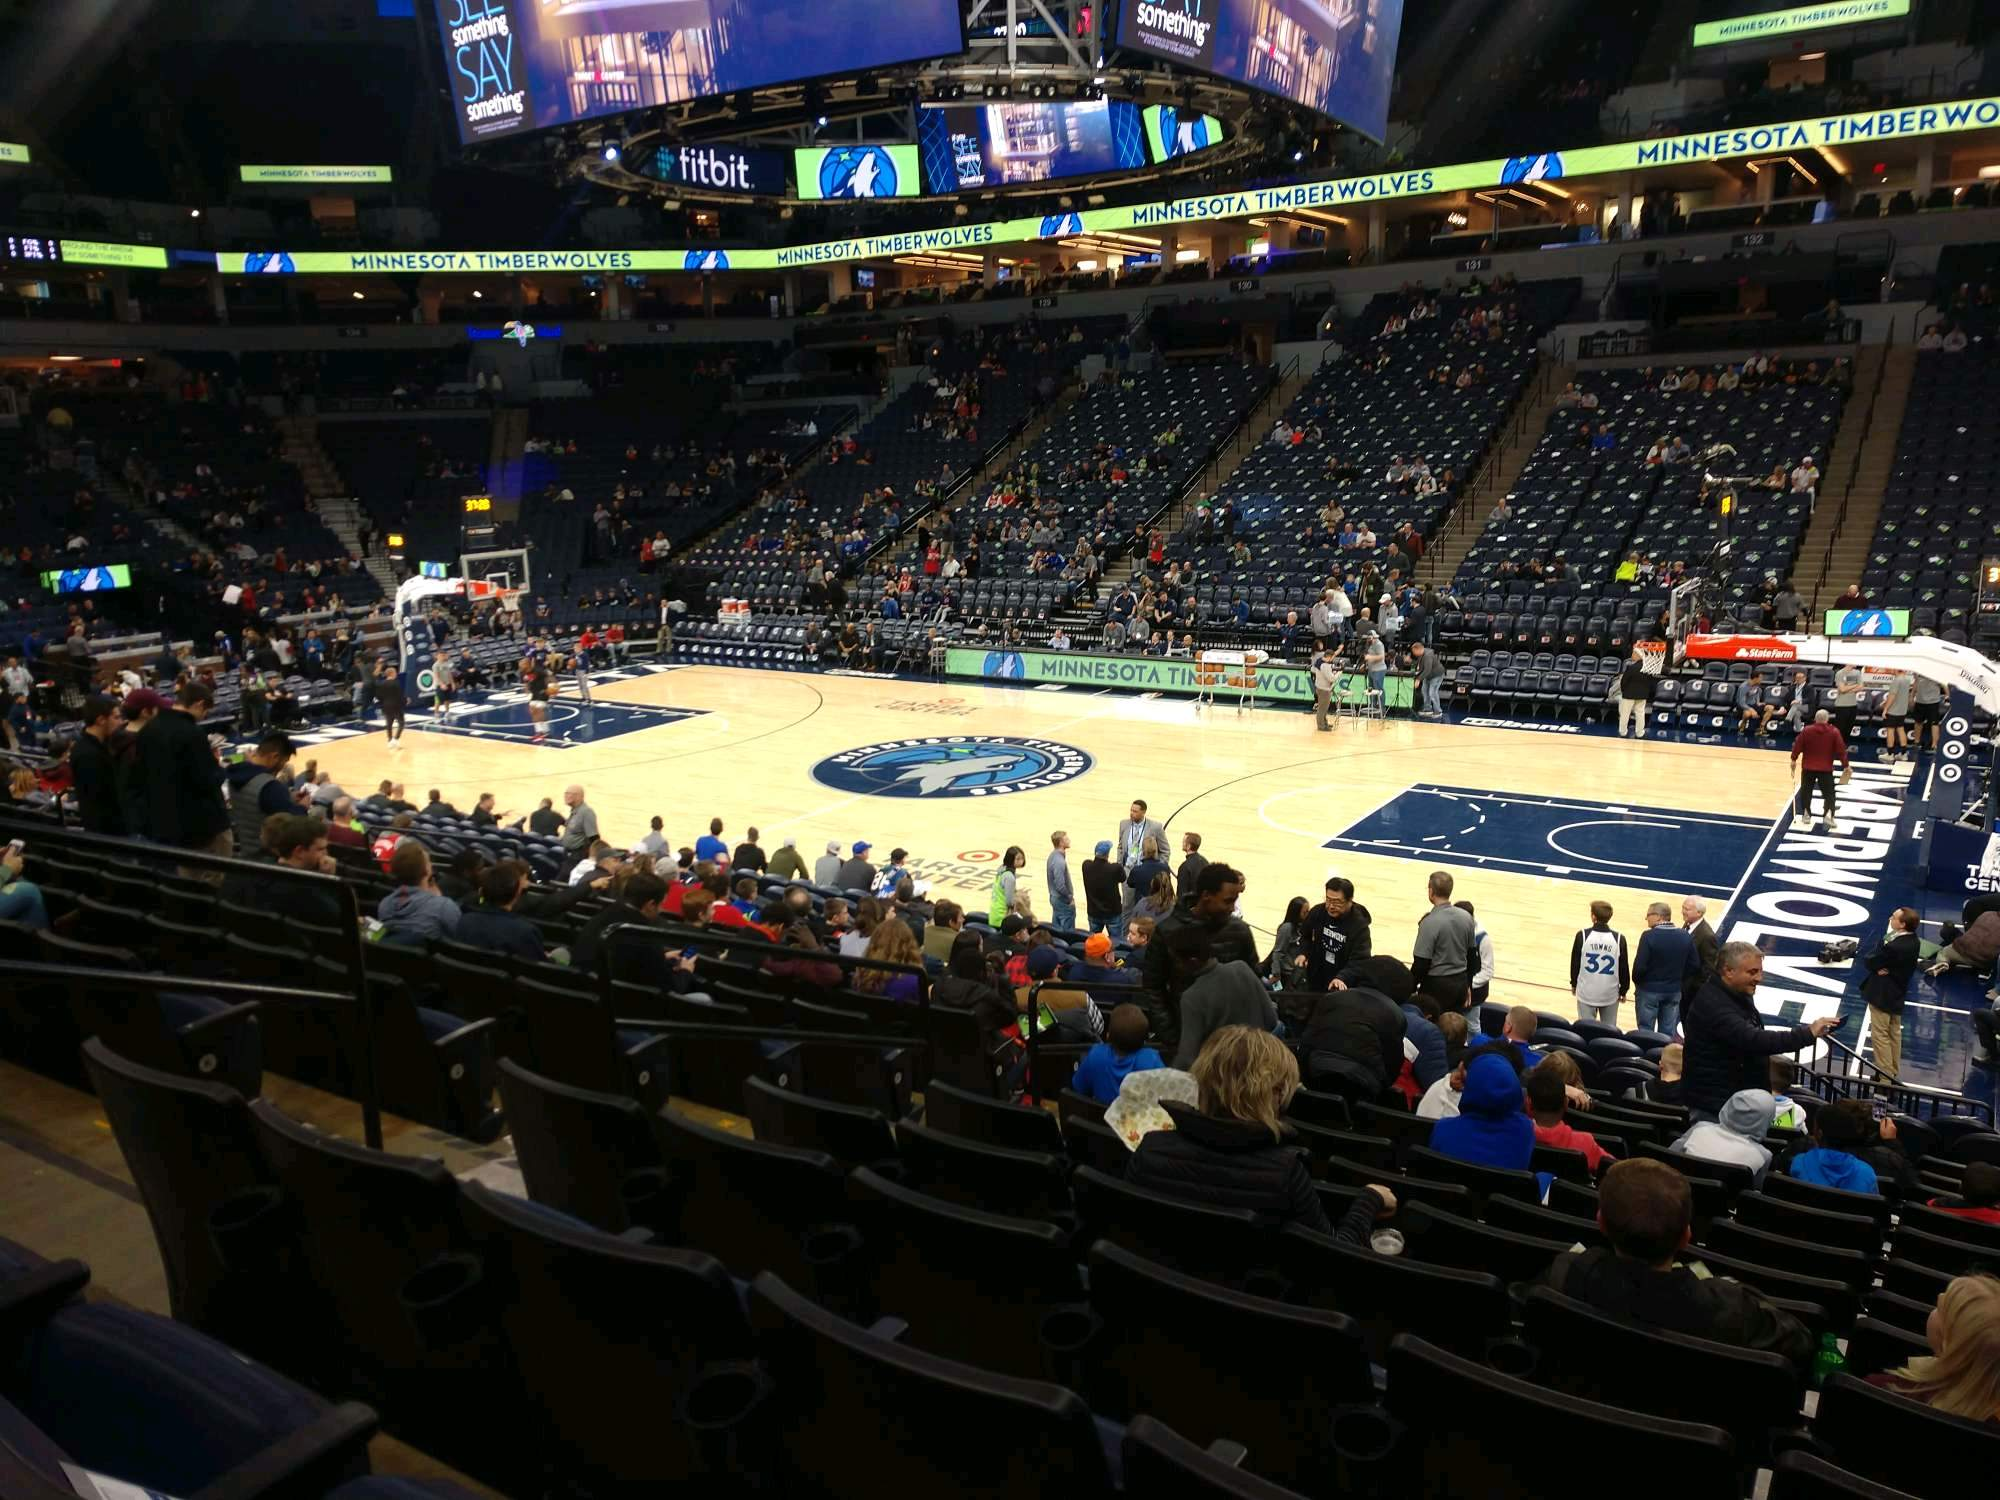 Target Center Section 109 Row N Seat 9